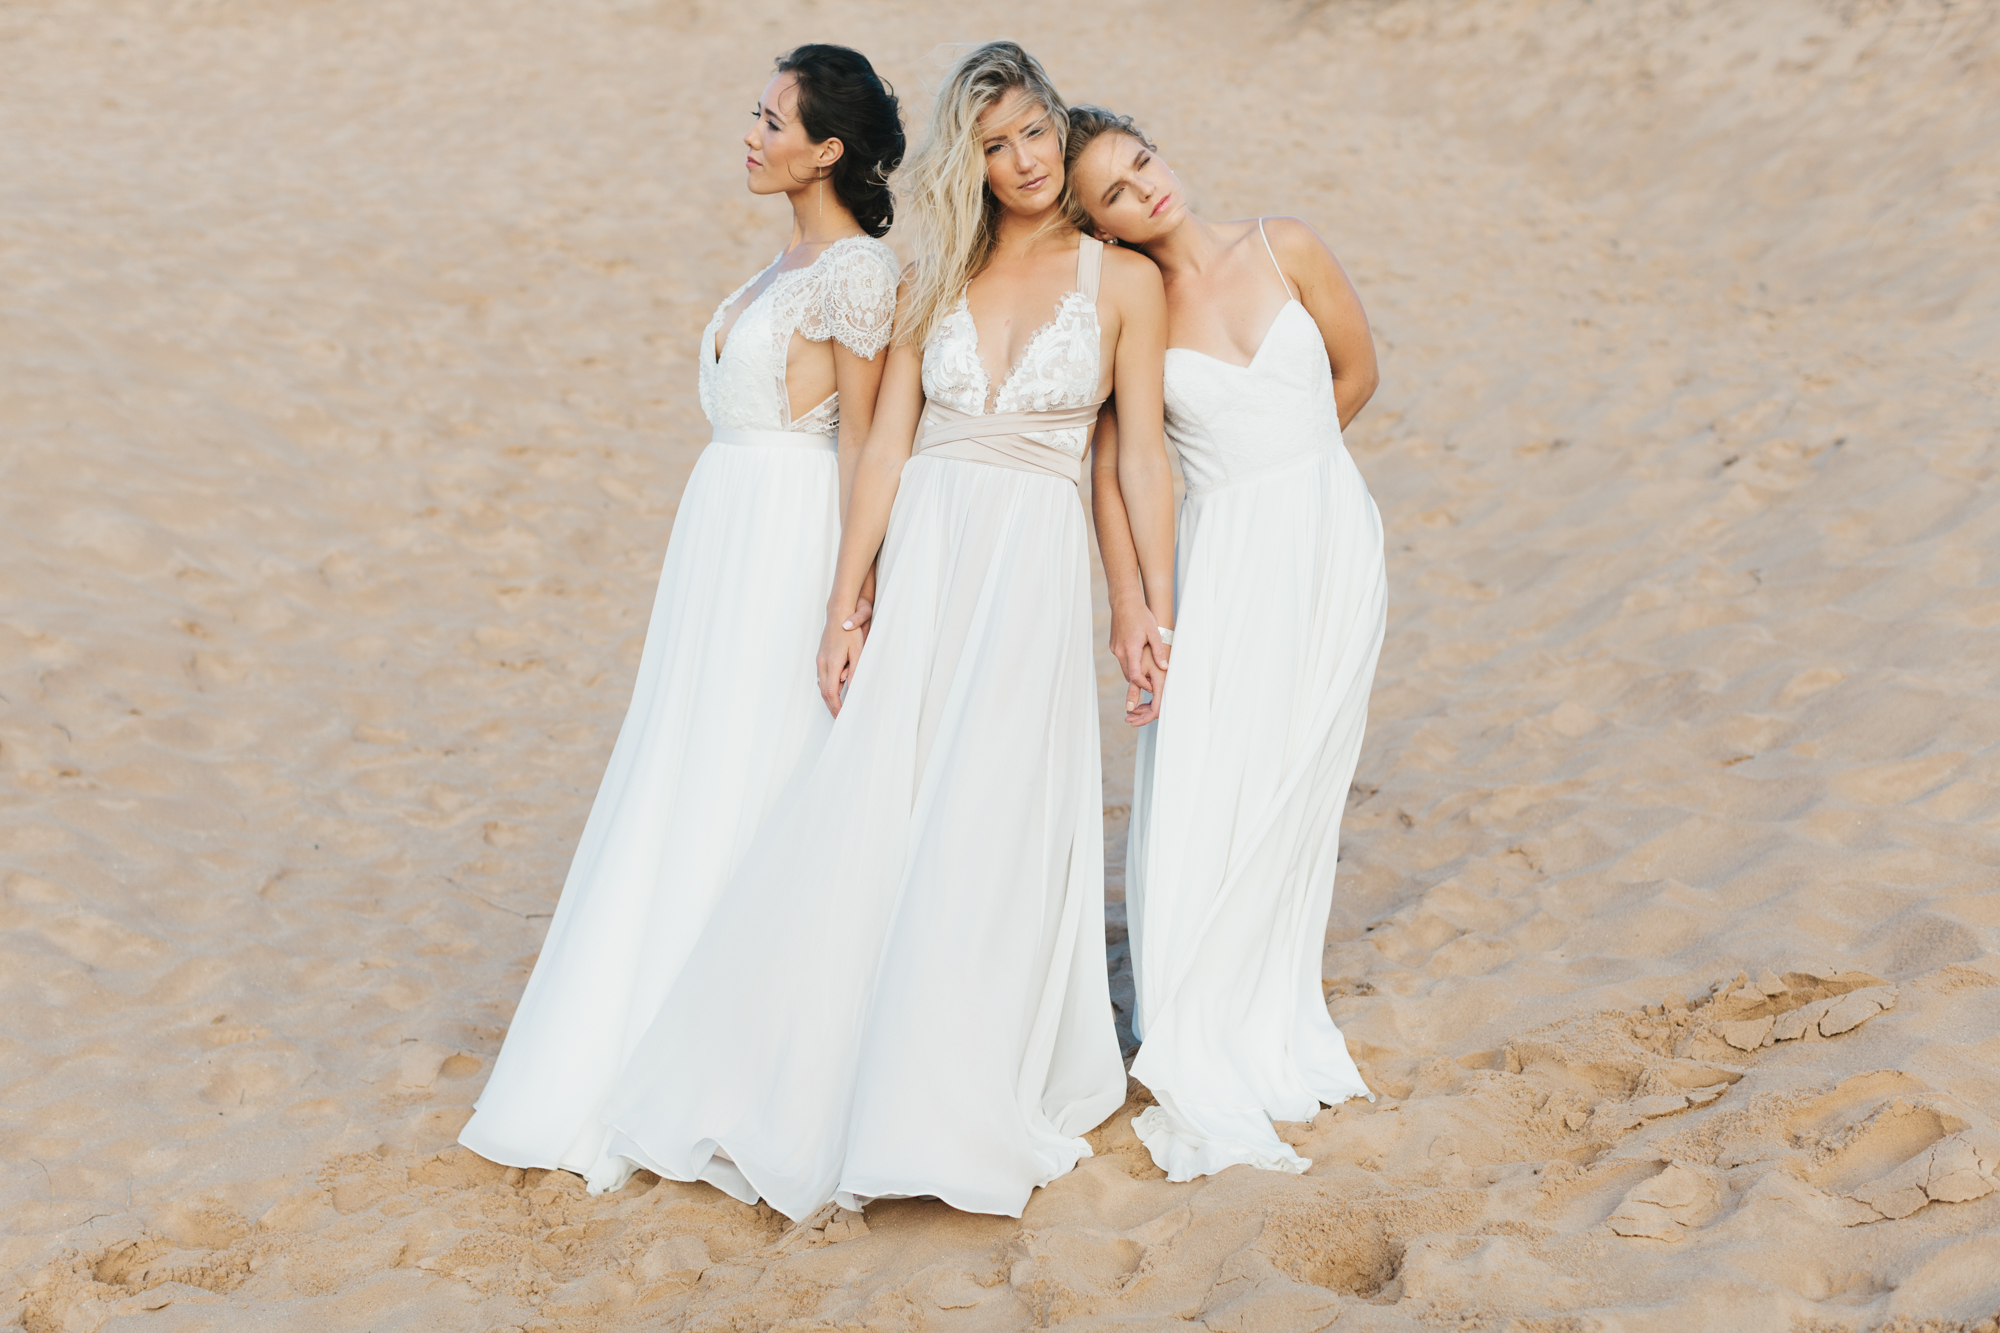 Sleeping Bear Dunes Bridal Portraits Wedding Photographer Mae Stier-036.jpg